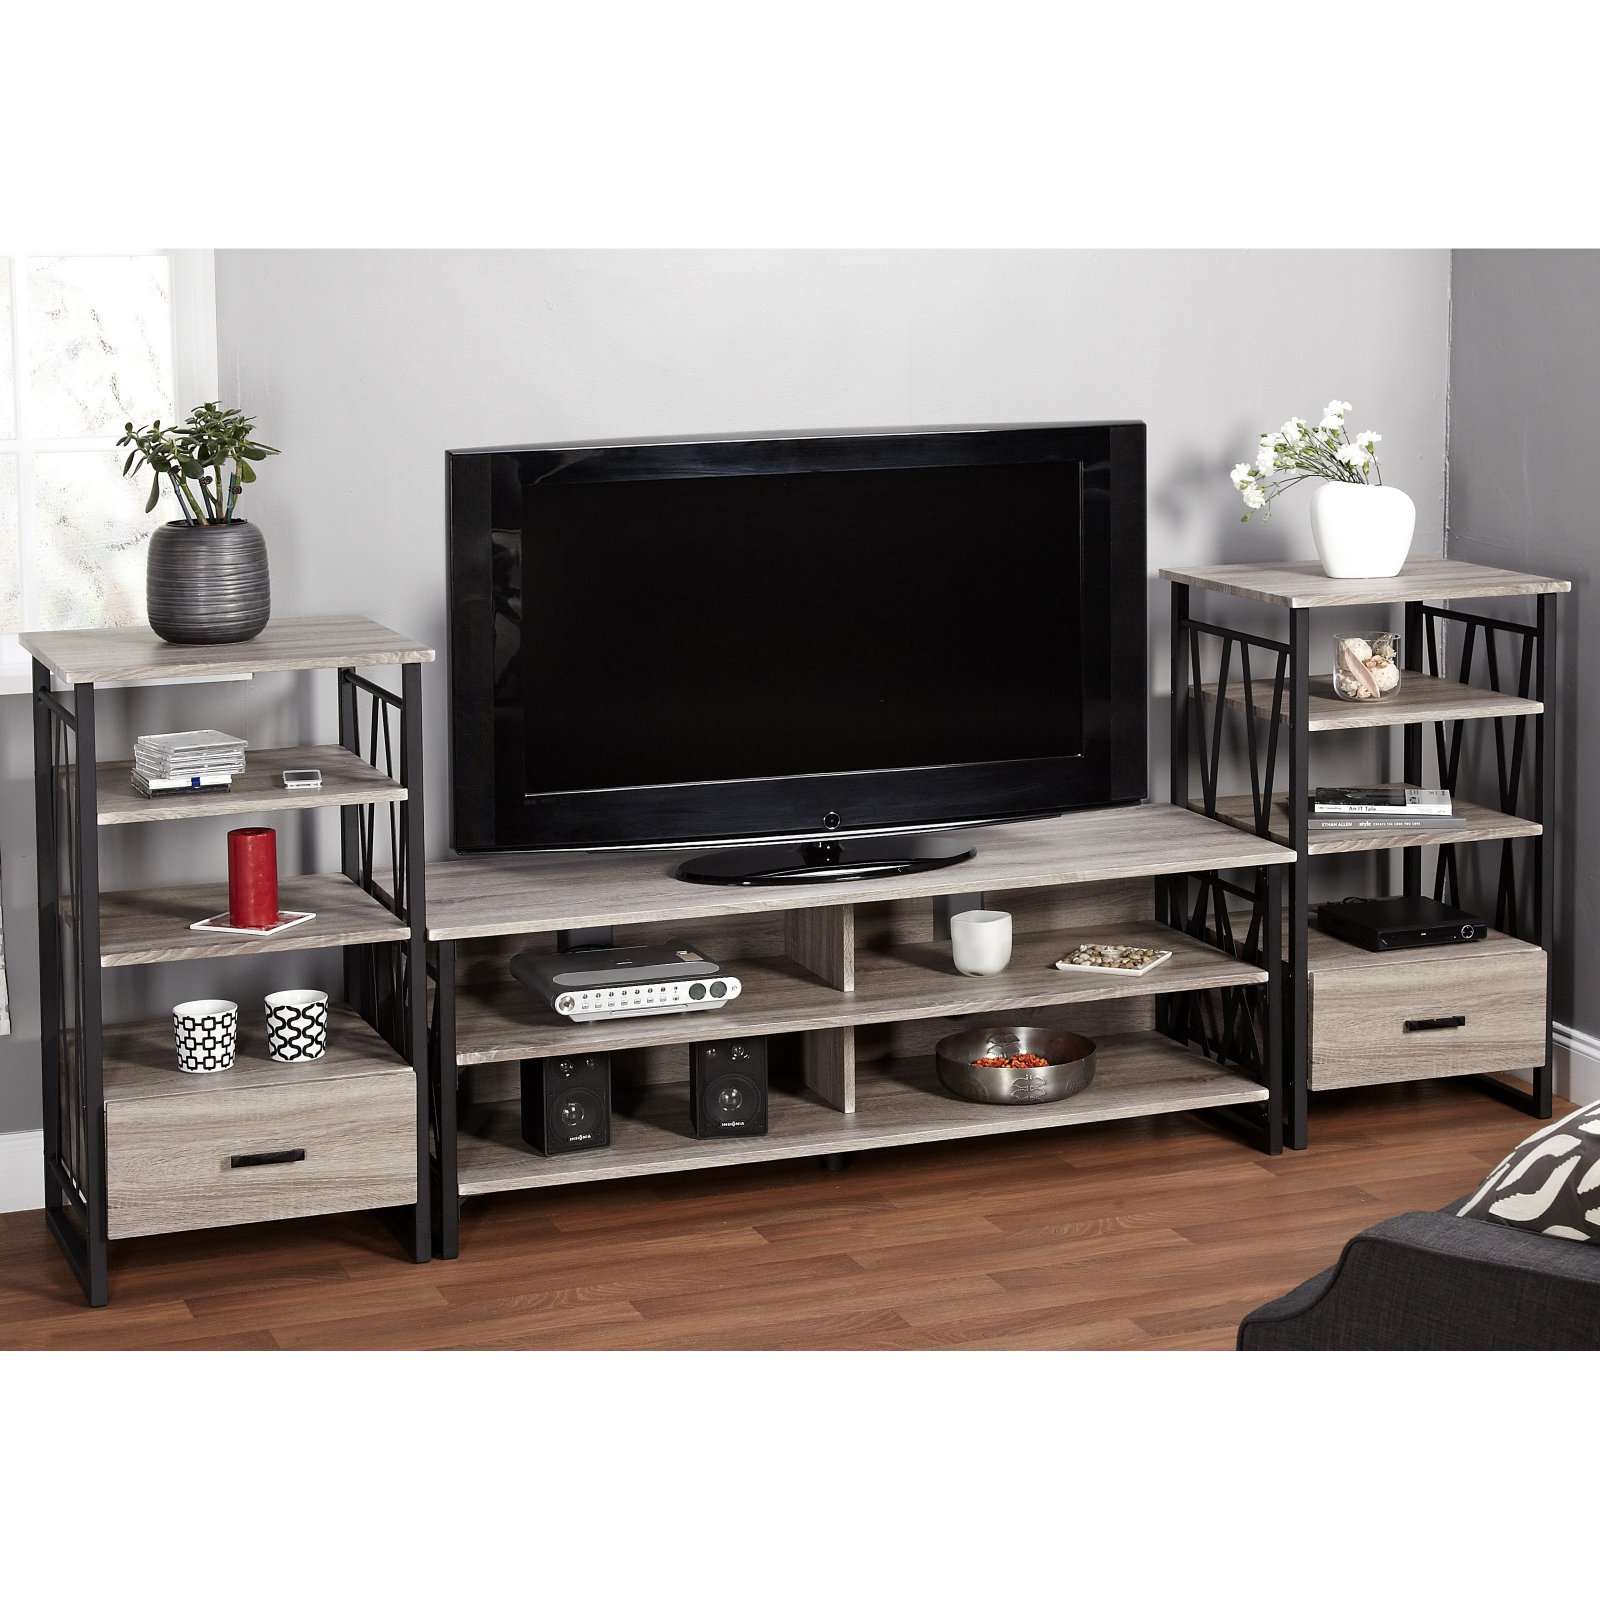 Target Marketing Systems Seneca TV Stand with 2 Piers